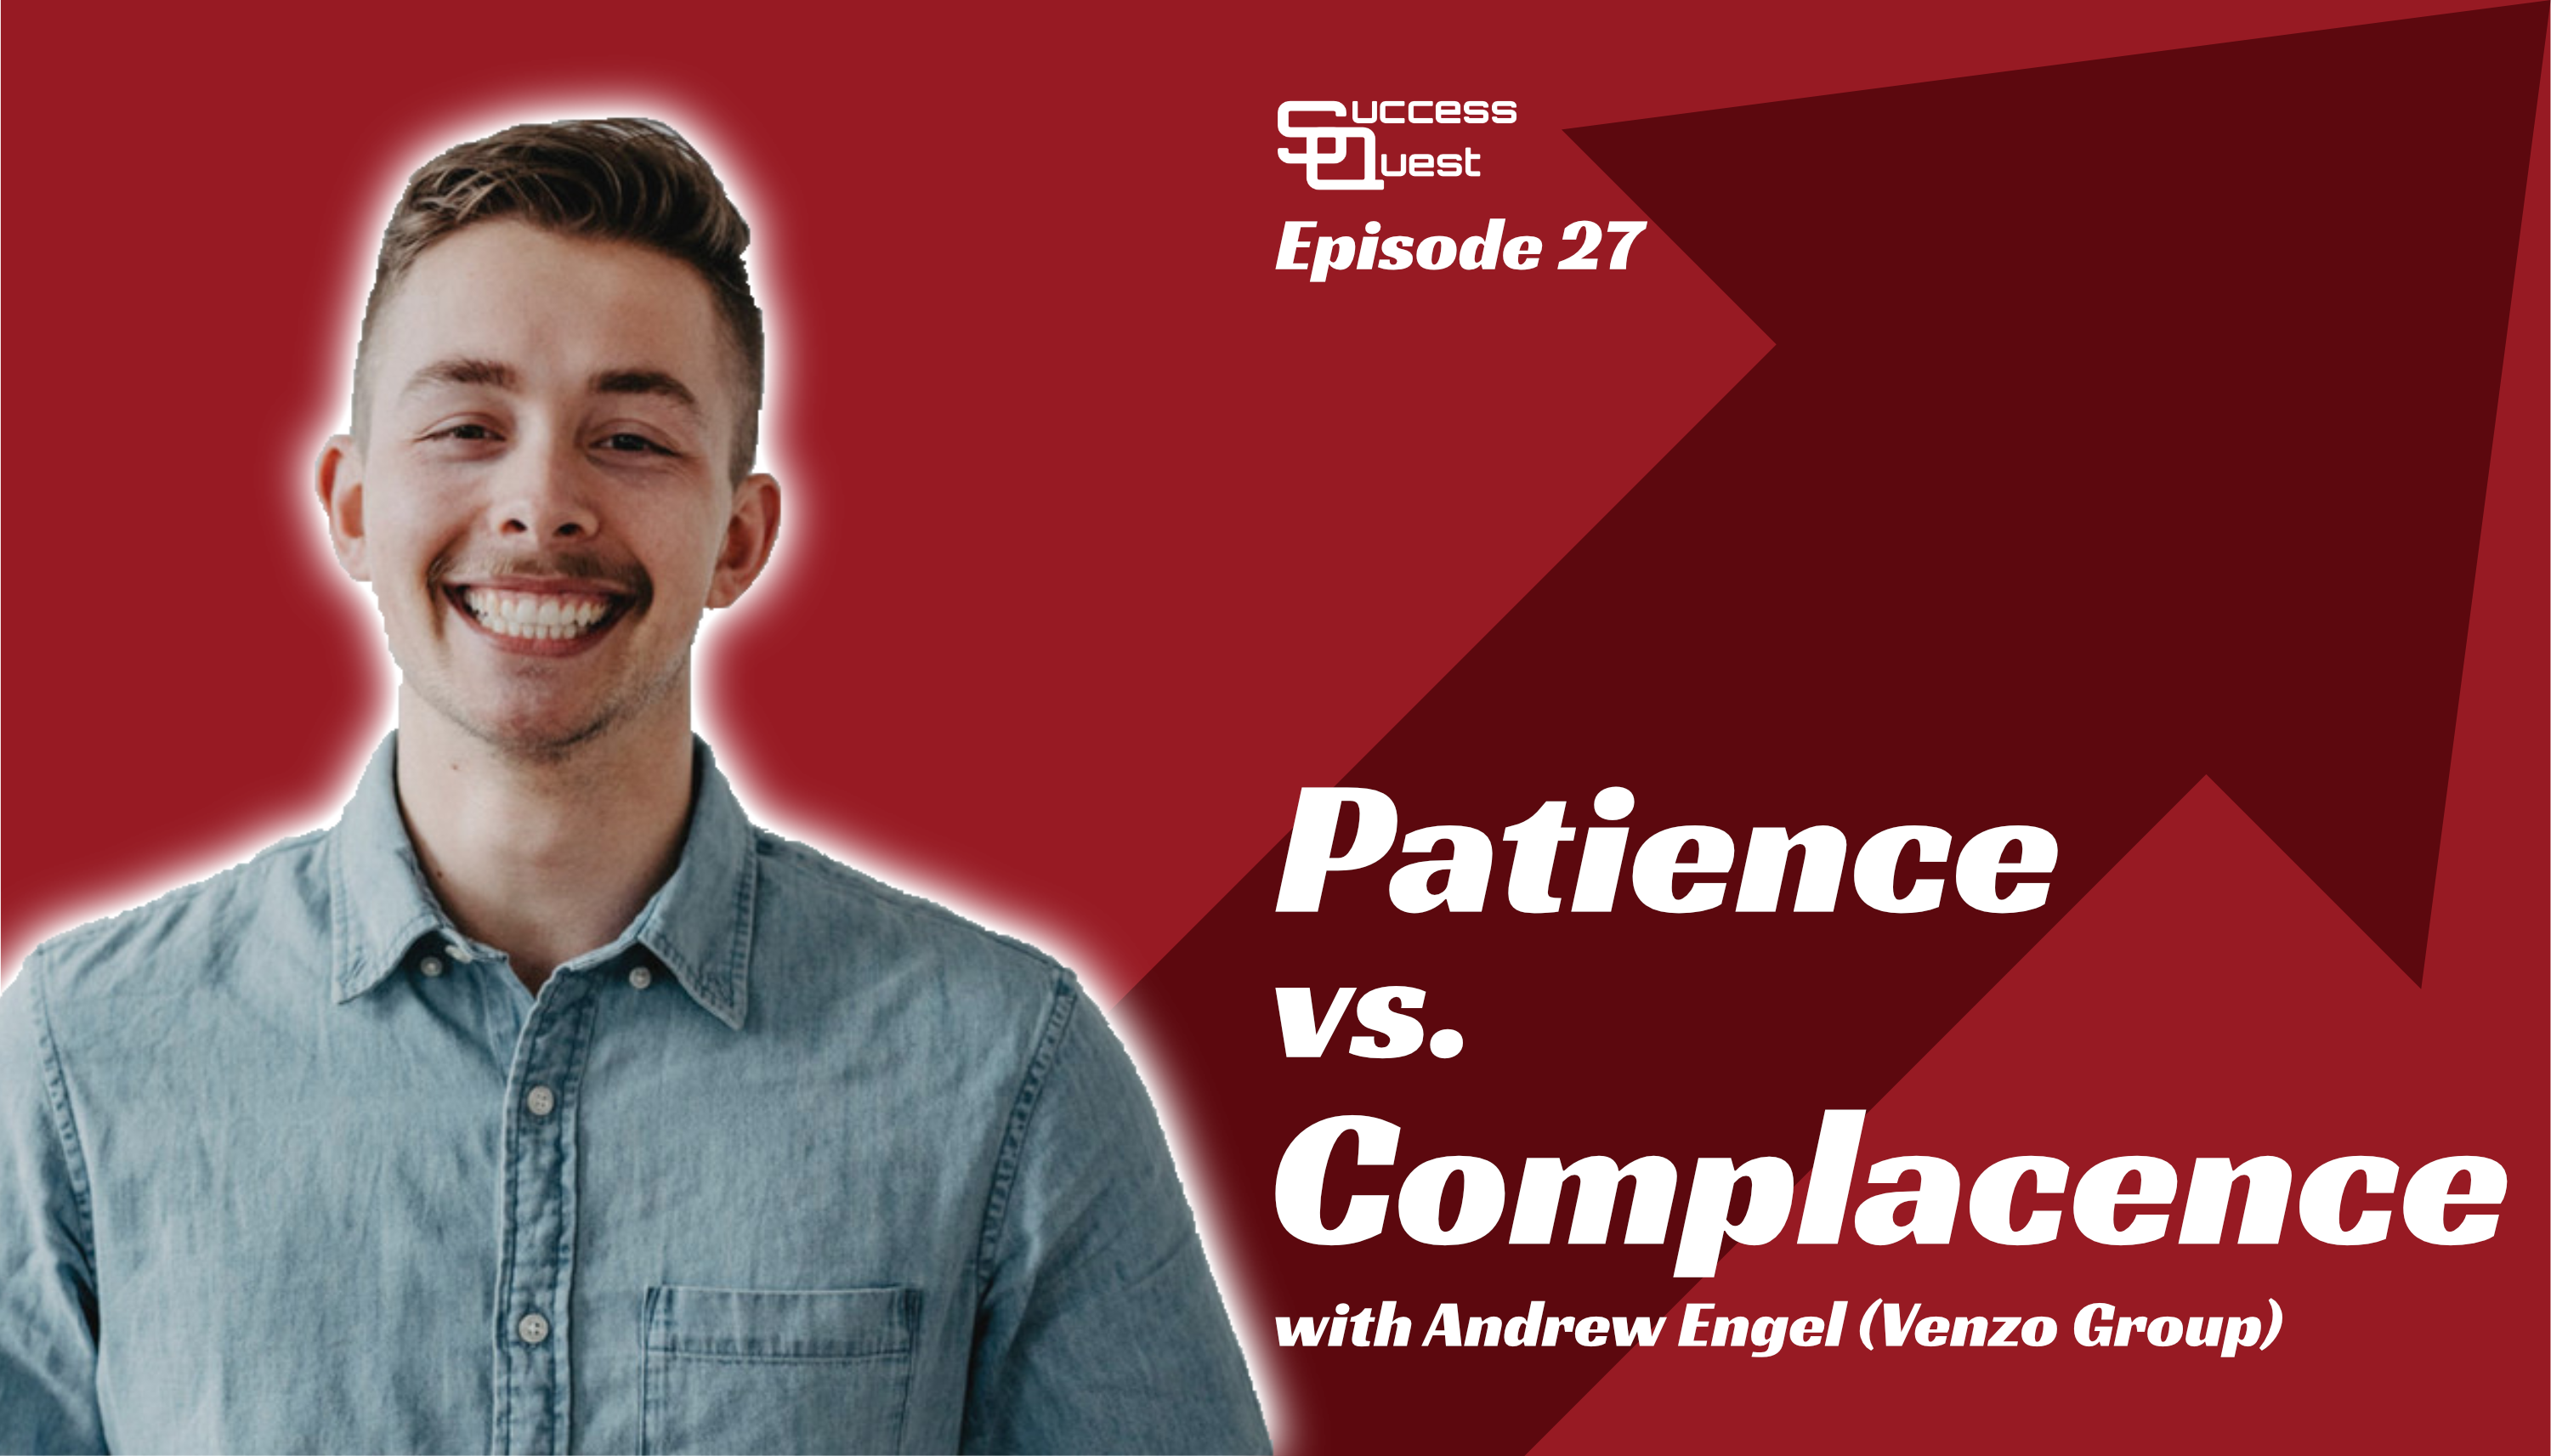 Andrew Engel Venzo Group Patience Complacence Success Quest